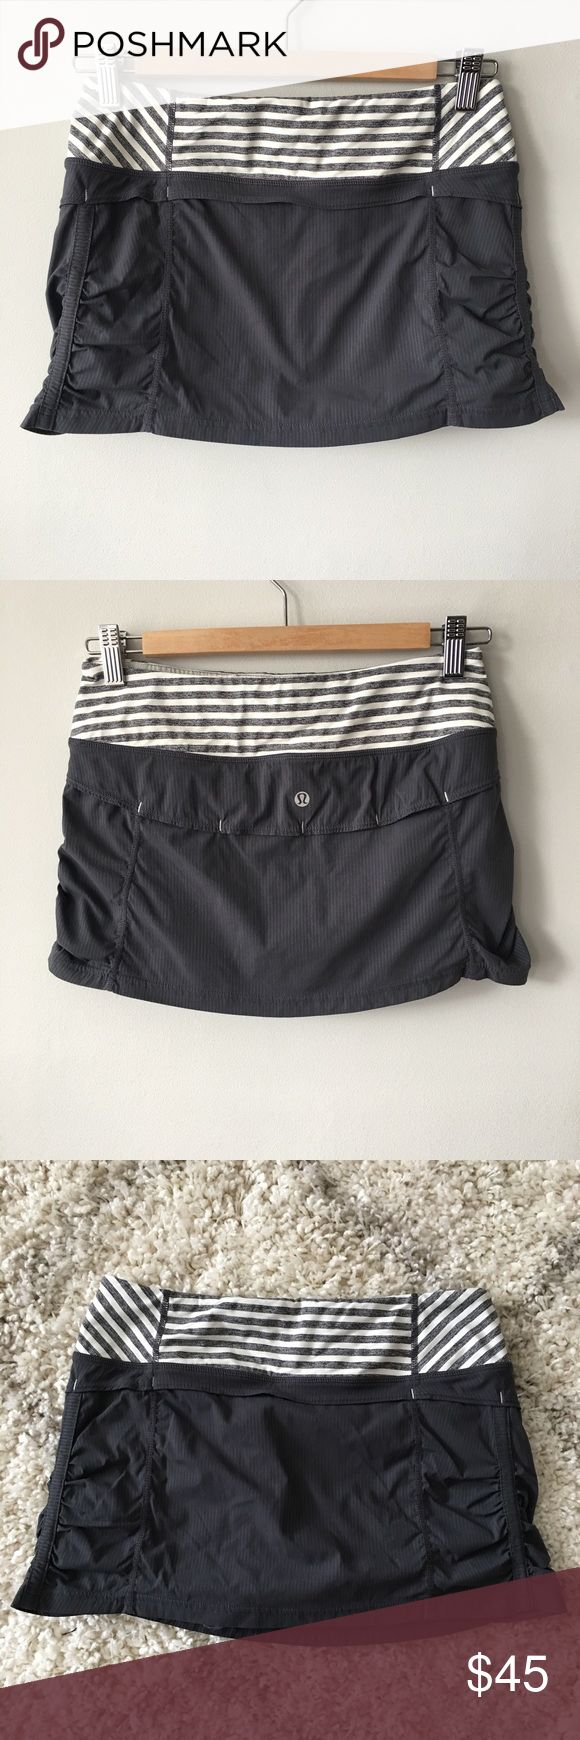 🍋 Lululemon Jog Skirt Lululemon Jog Skirt in gray. Nylon/Spandex skort with soft, stretchy striped waistband. Shorts attached underneath. Lightly worn & washed - no stains, holes or pilling- great, pre-owned condition. Bundle & save 💰! Sorry - 🚫 trades! lululemon athletica Shorts Skorts